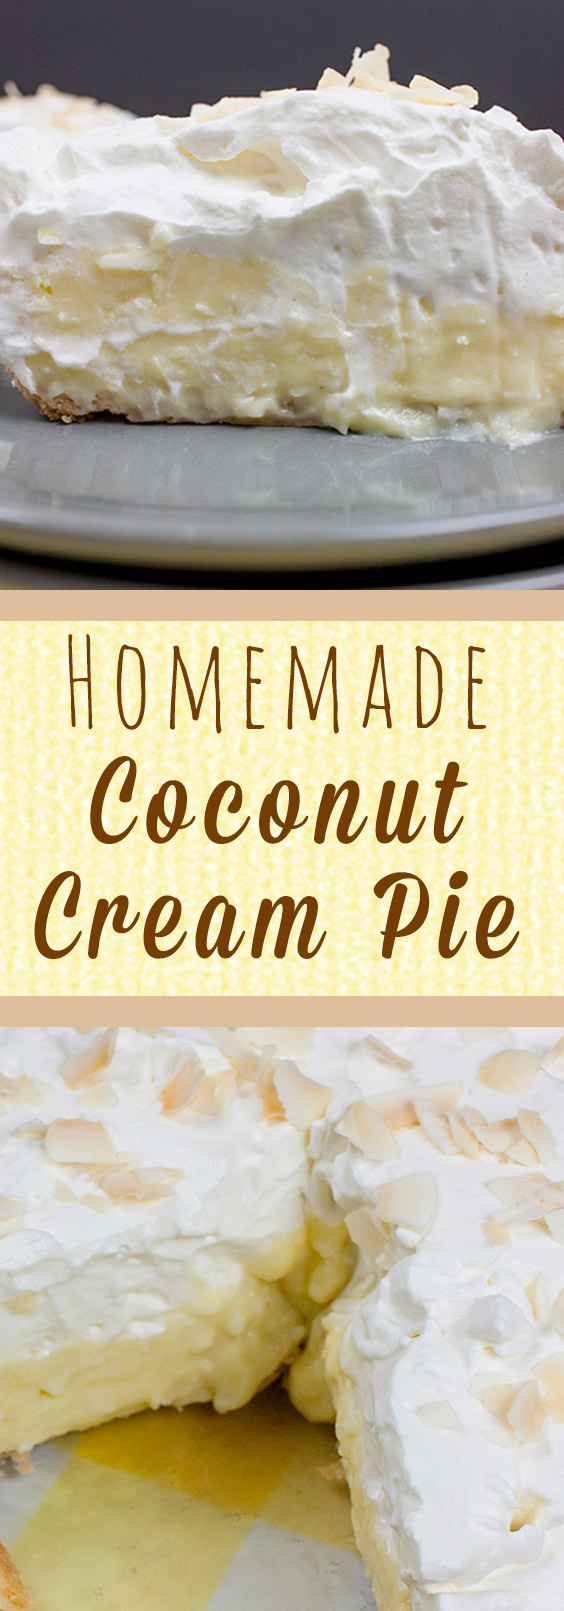 Best Homemade Coconut Cream Pie - Super flaky, crunchy crust loaded with creamy, velvetly coconut custard and topped with homemade whipped cream. Sublime!